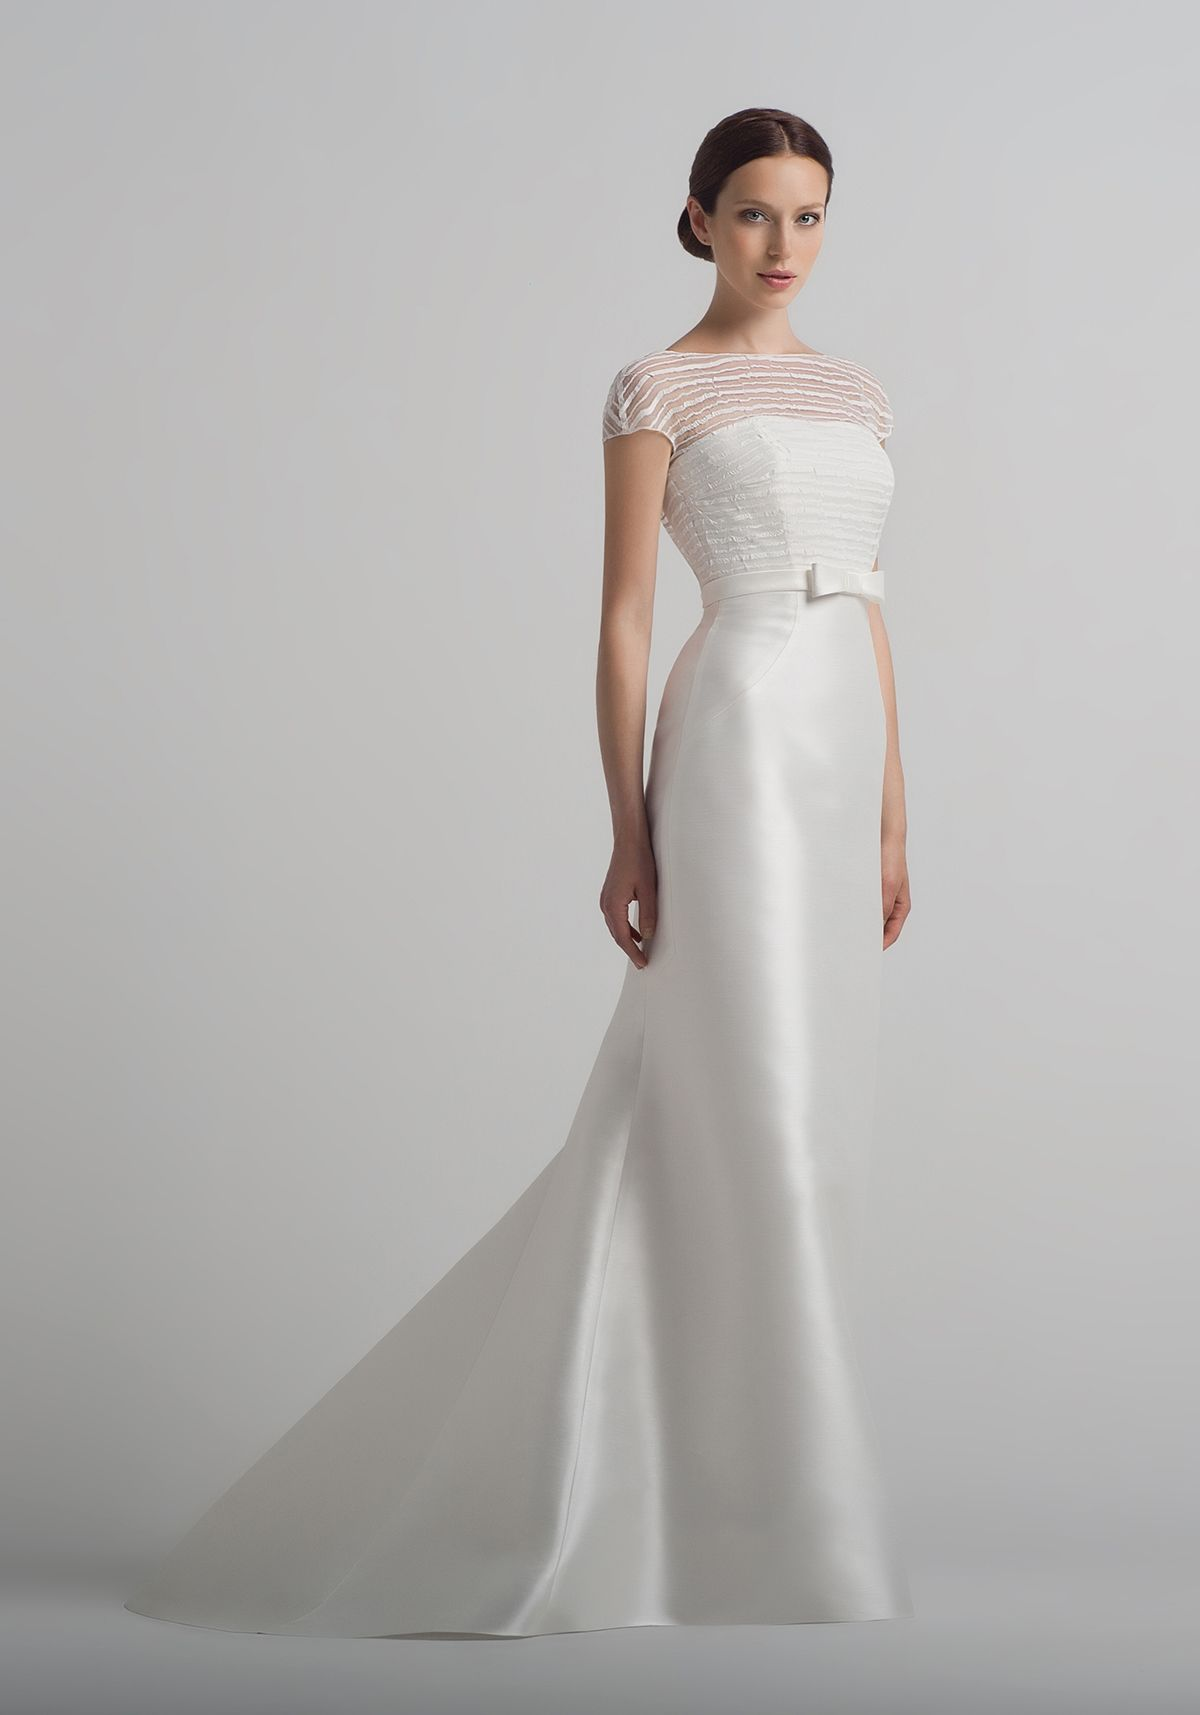 A Straight Cut Satin Wedding Dress Can Be Combined With Bridal Bolero Is Sold Separately